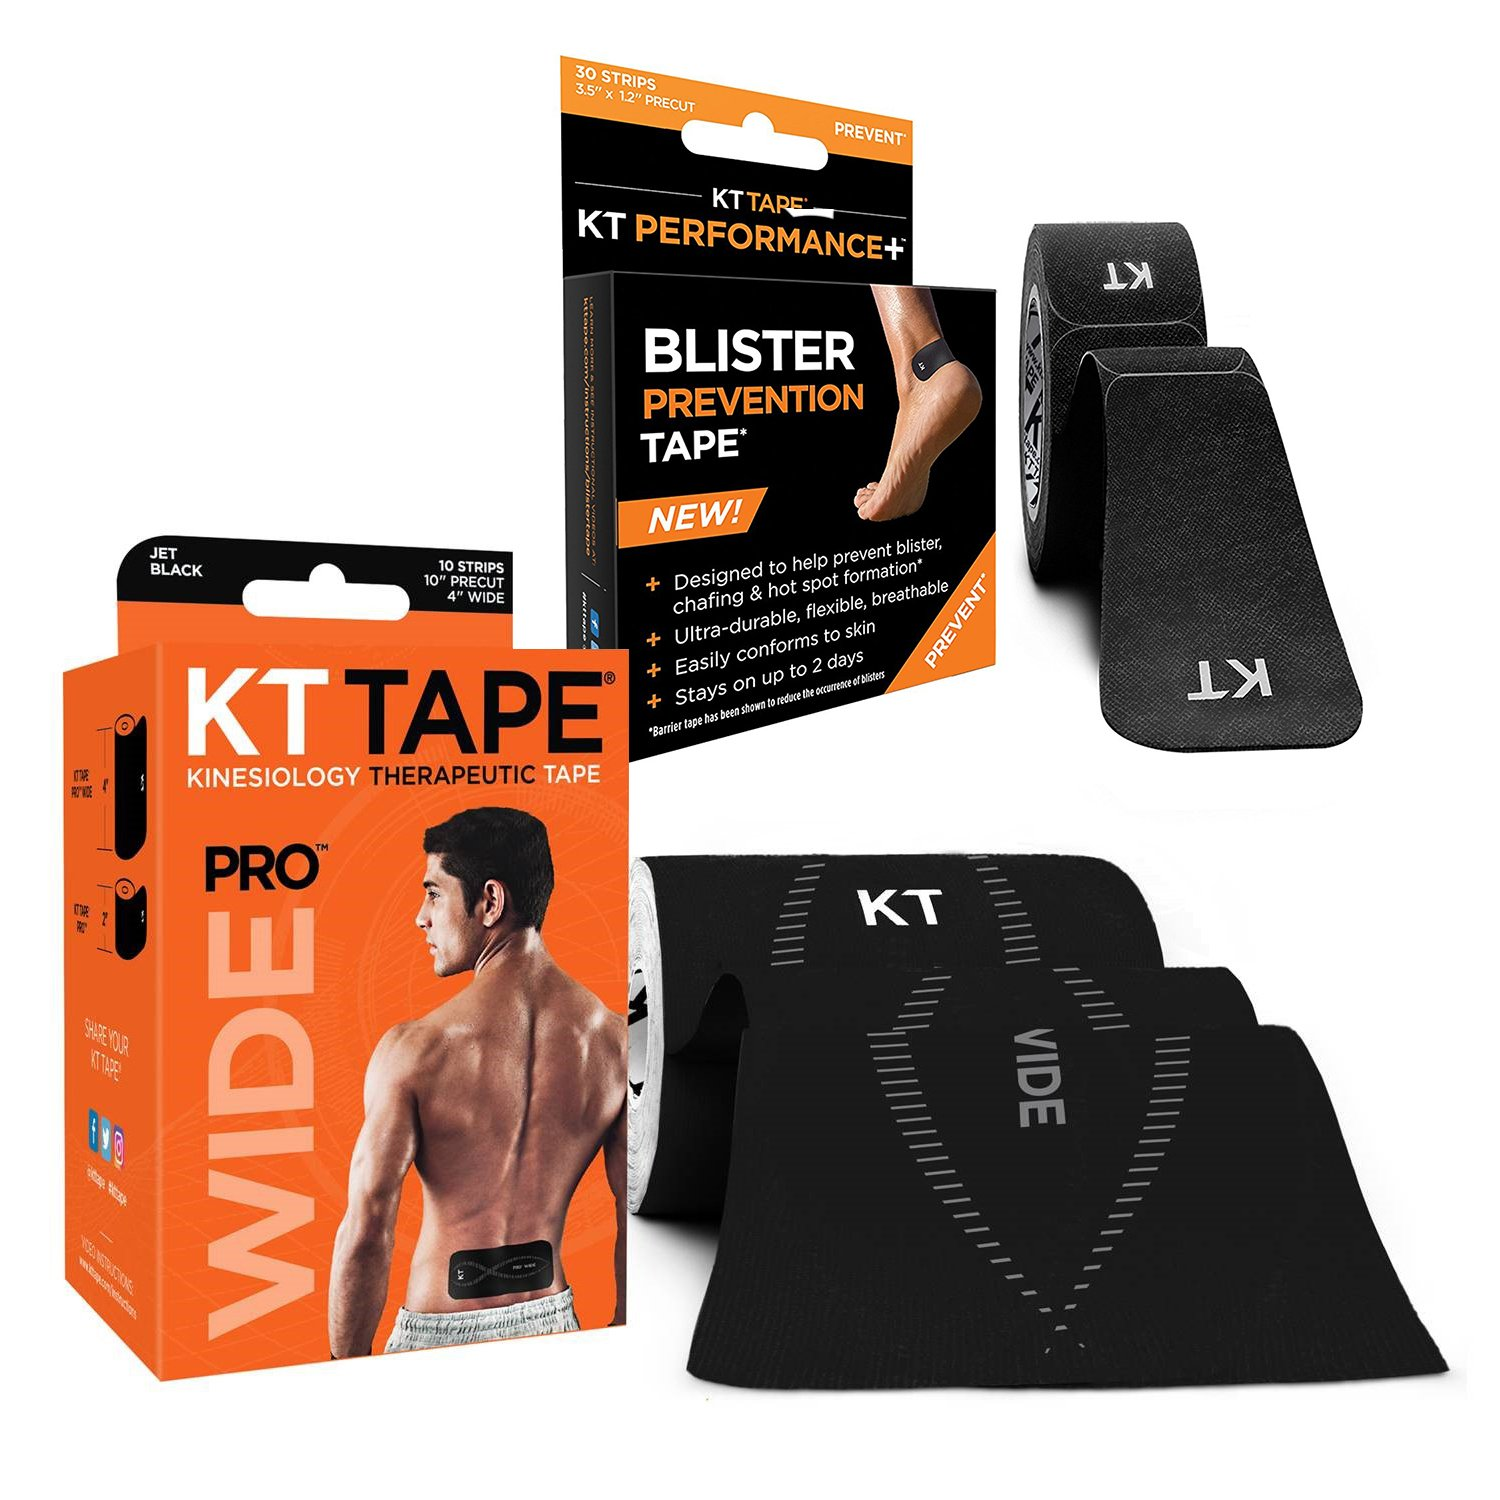 KT Tape Pro Wide Kinesiology Sports Tape, 10 Precut 10 inch Strips with Free Blister Prevention Pack